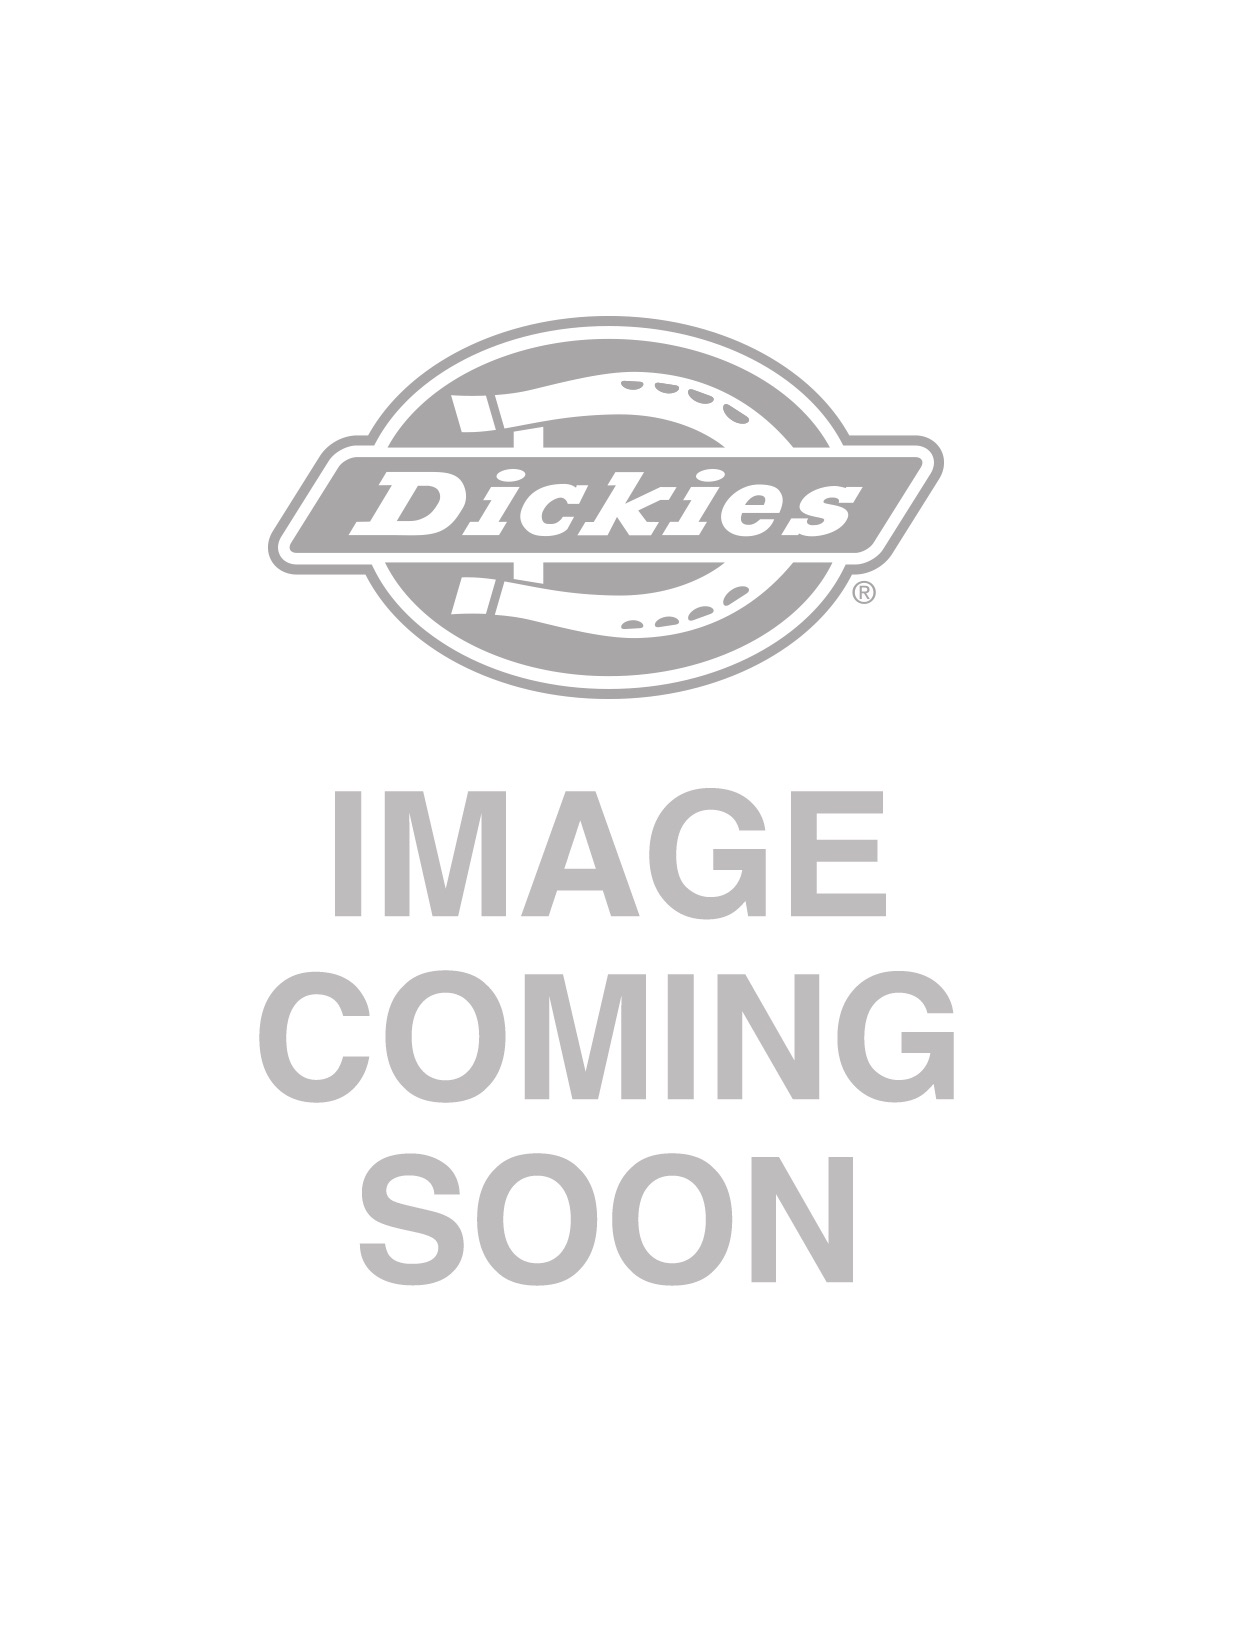 Dickies Womens Baseball T-Shirt